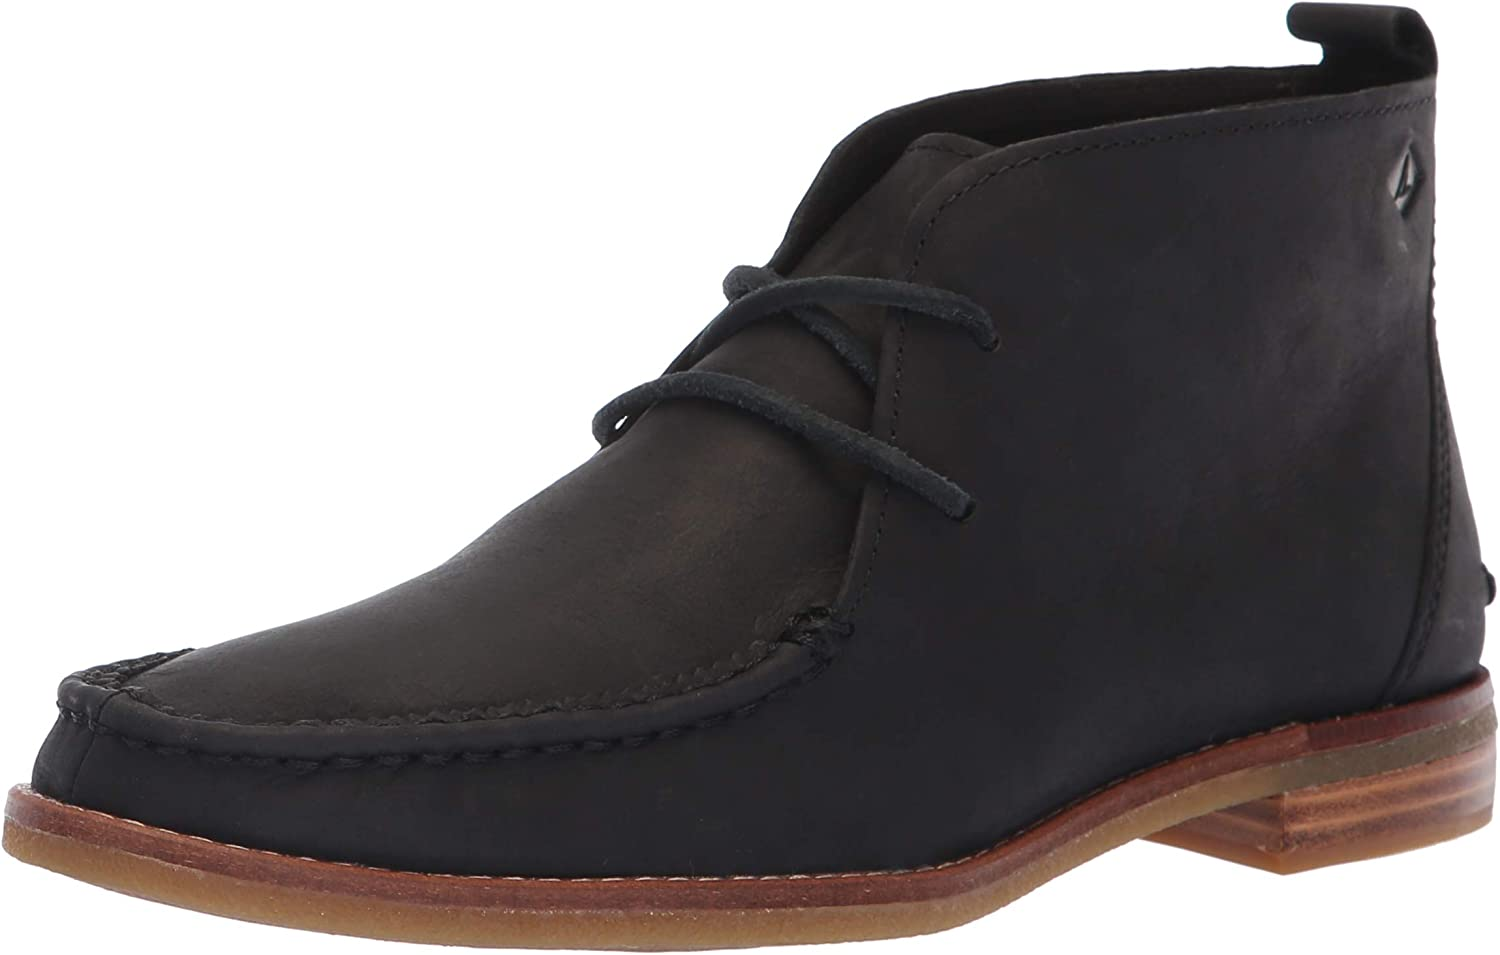 Sperry Top-Sider Womens Seaport Tahoe Ankle Boot